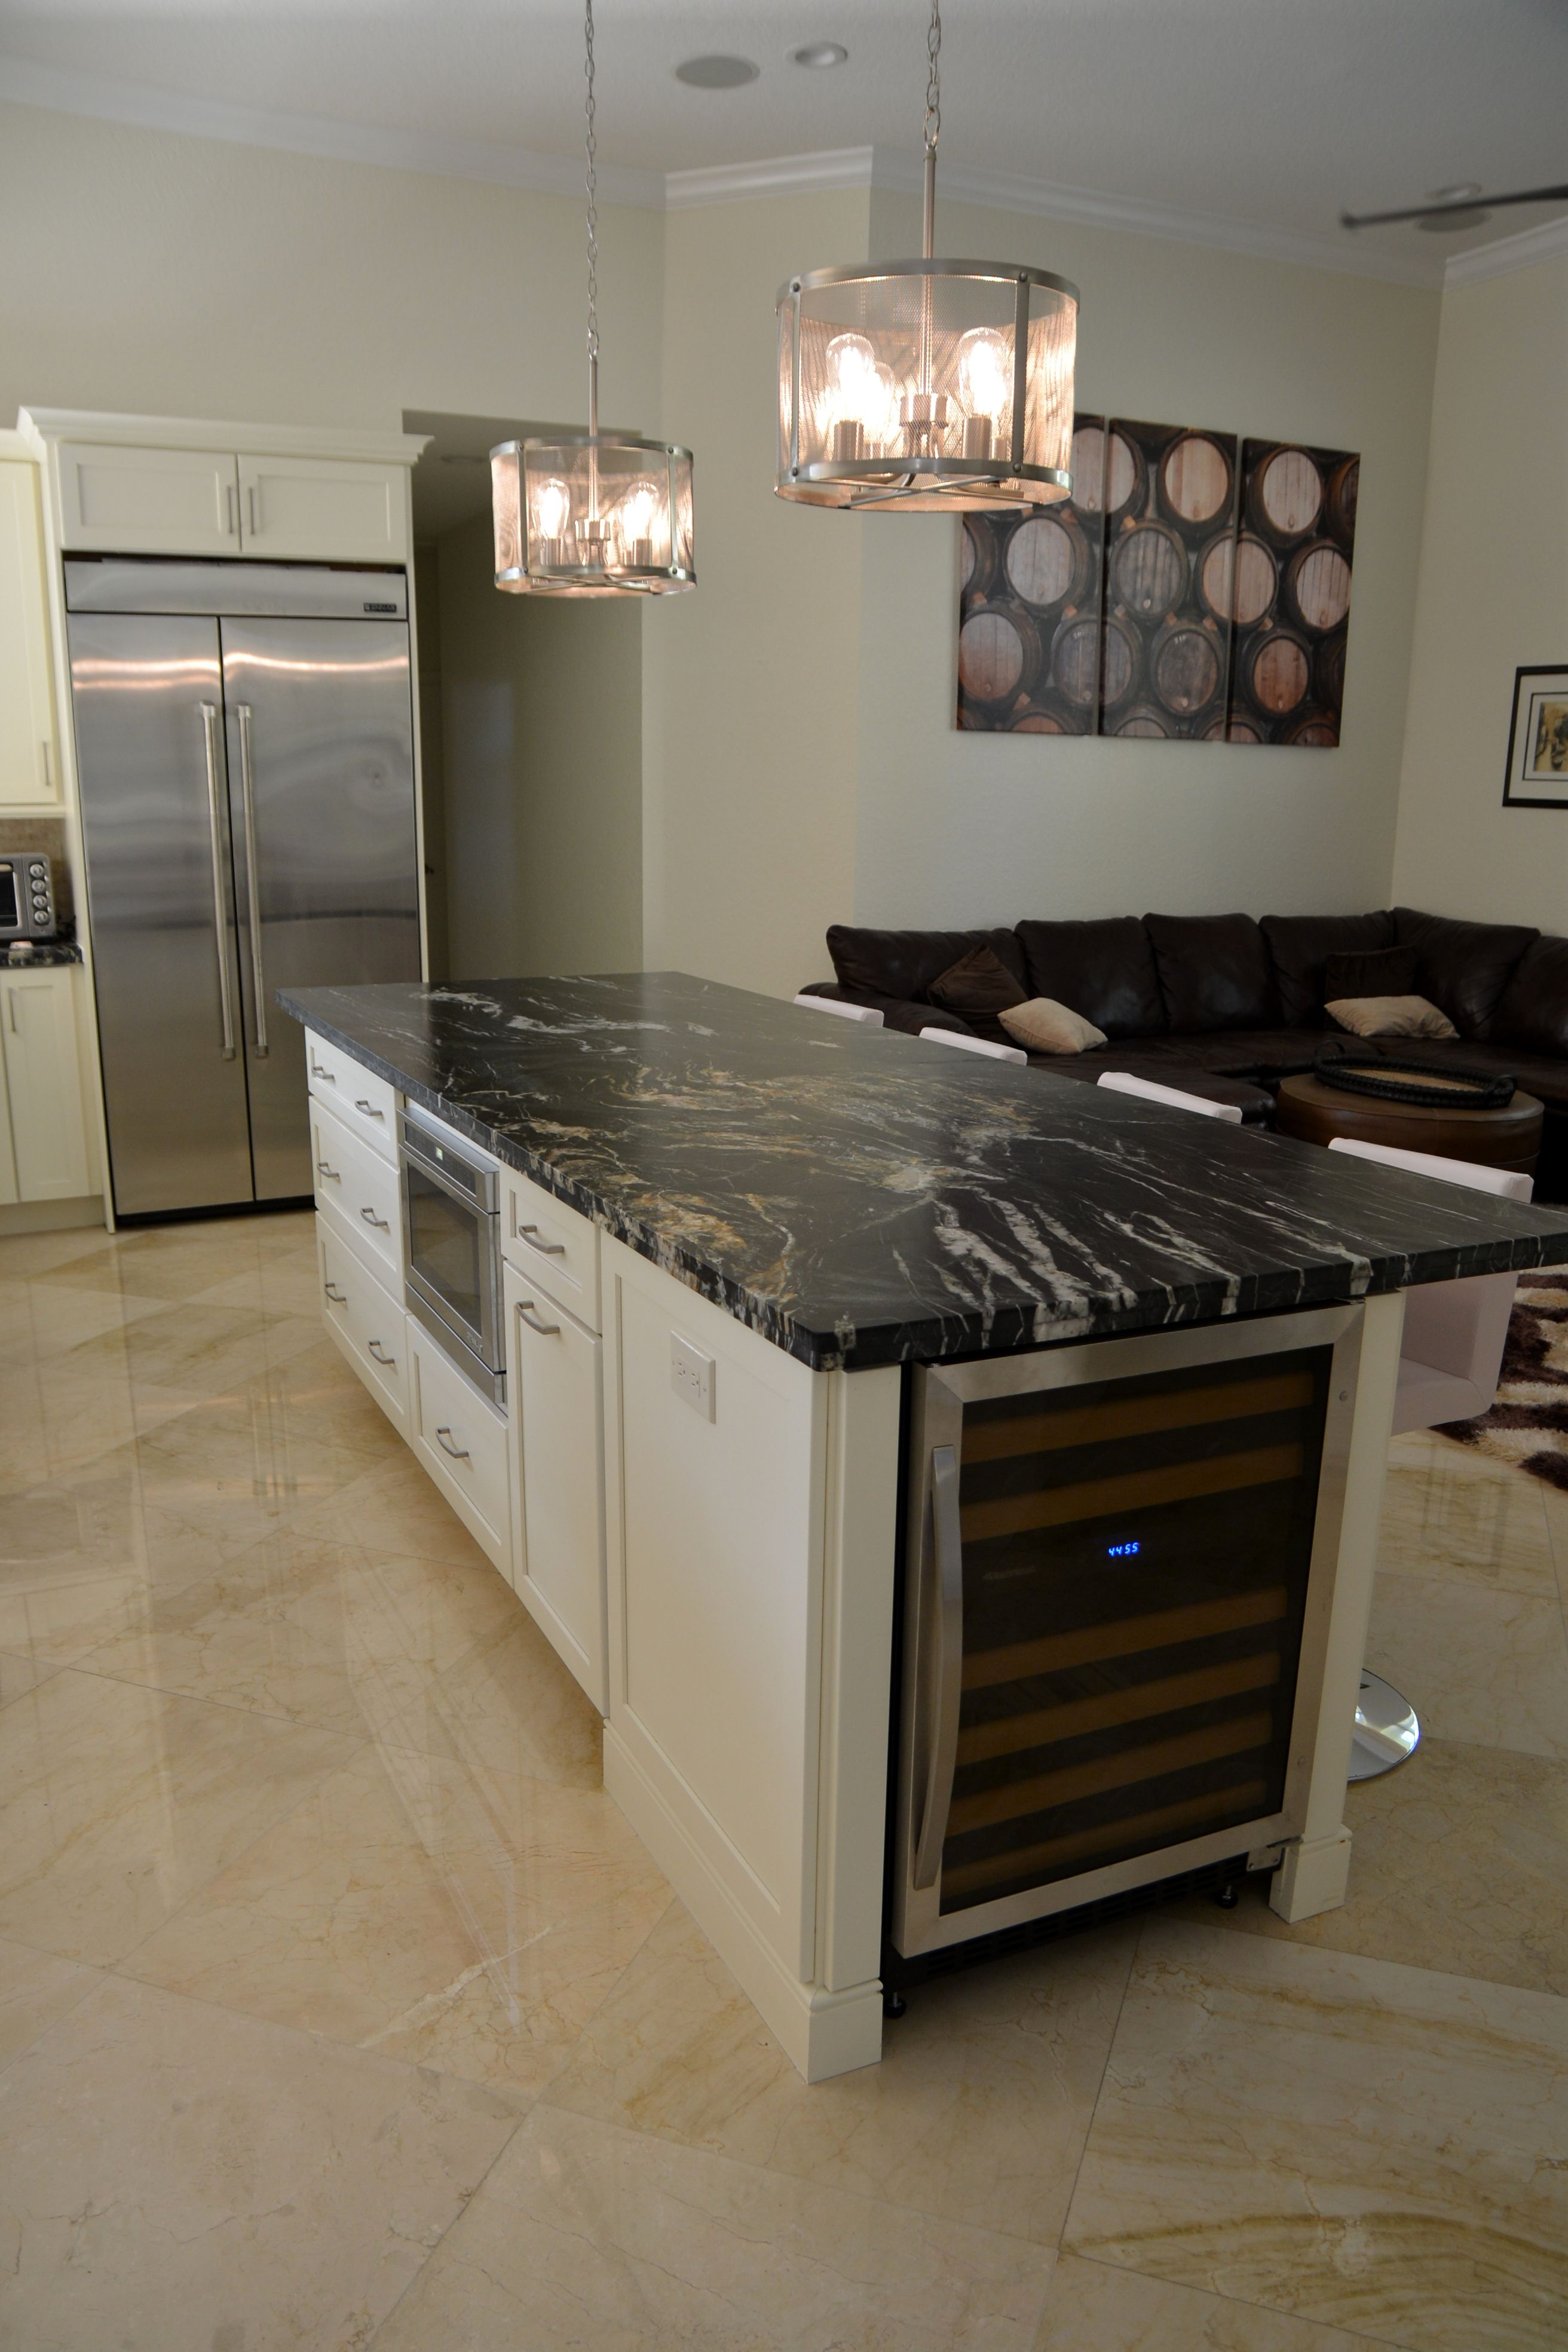 Kitchen Island By Kitchen Designs More With White Cabinets Black White Granite Countertop St Ikea Kitchen Island Black Kitchen Island Kitchen Countertops